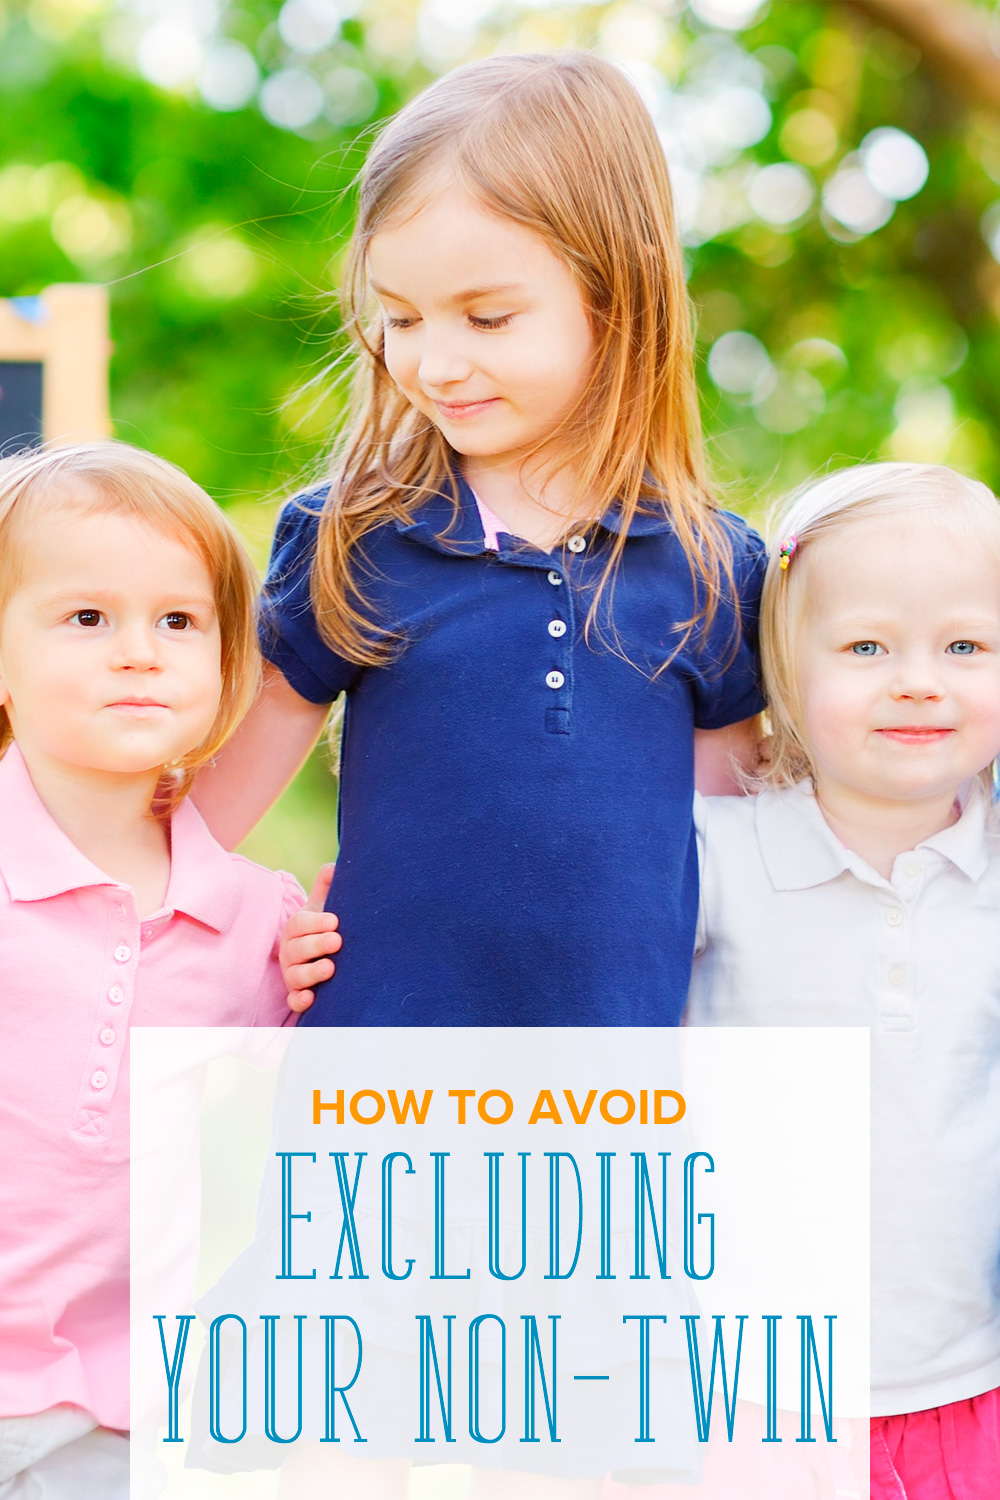 Worried that your non twin child will feel left out when all the attention is on the twins? Learn how to avoid excluding the non-twin siblings.